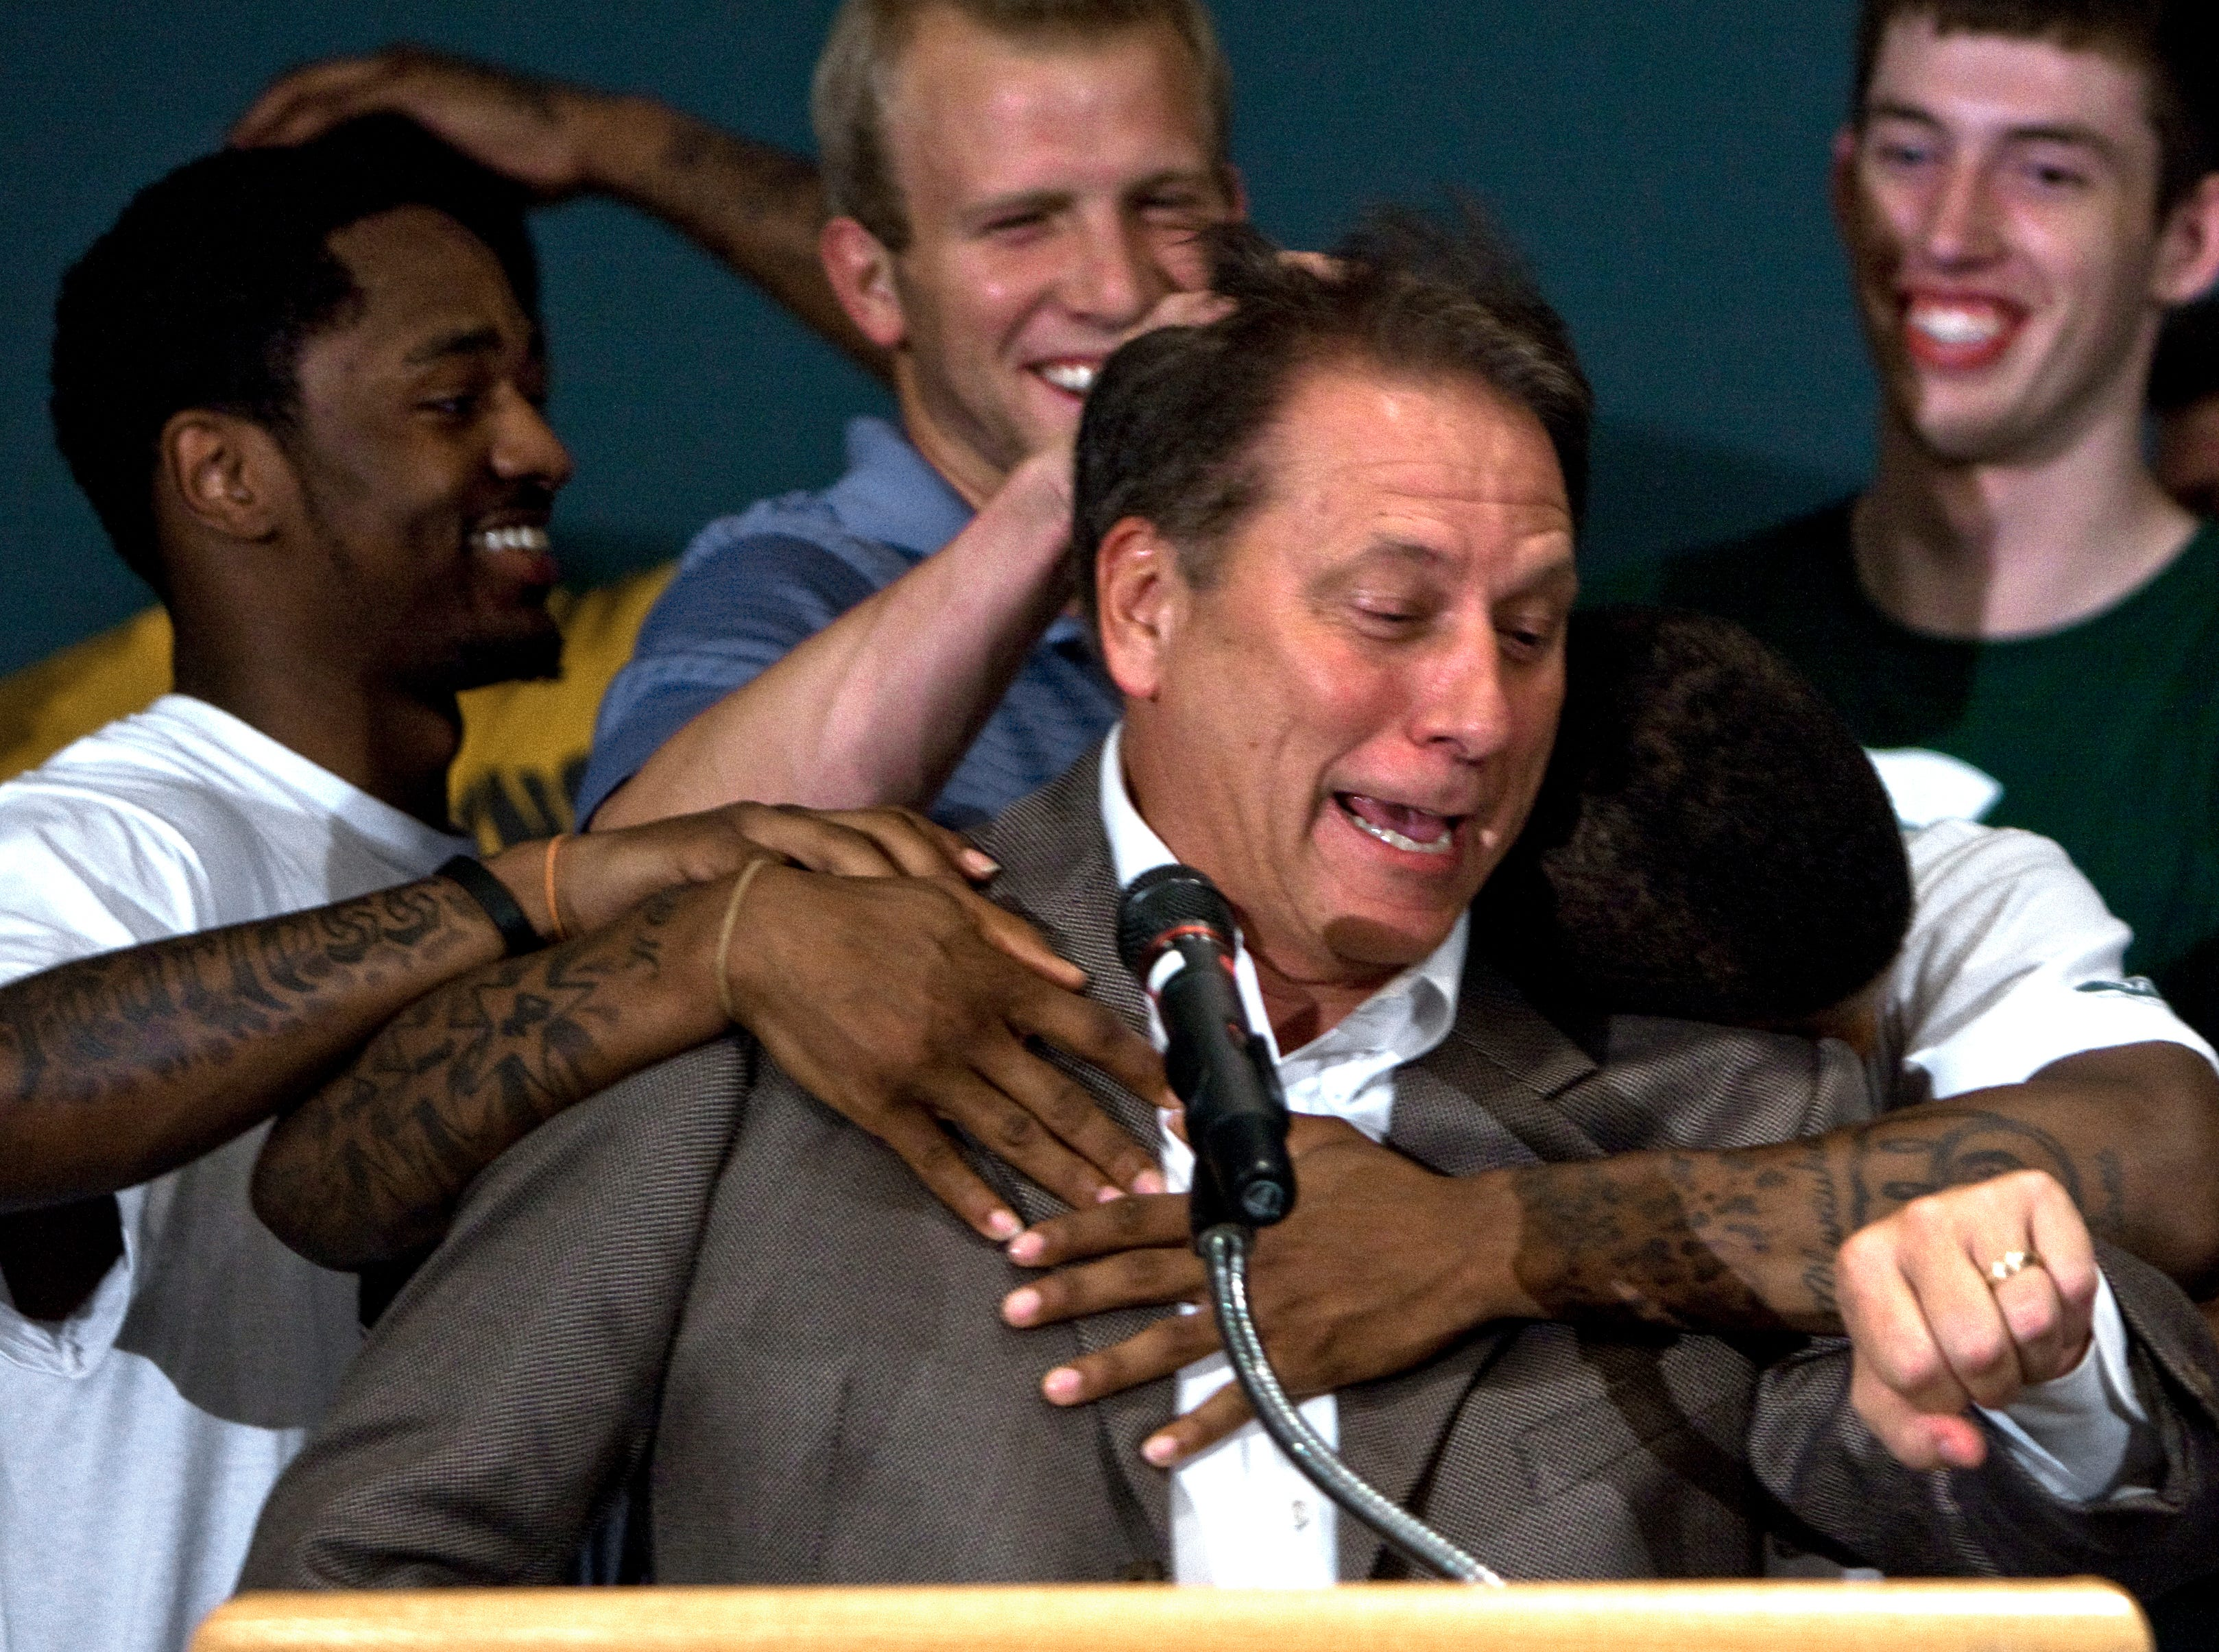 Tom Izzo is hugged by Korie Lucious, and flanked by (l. to r.) Kalin Lucas, Austin Thornton, and Garrick Sherman near the end of the press conference Tuesday evening, June 15th, 2010 where it was announced that Izzo would remain at the helm of the MSU men's basketball team.